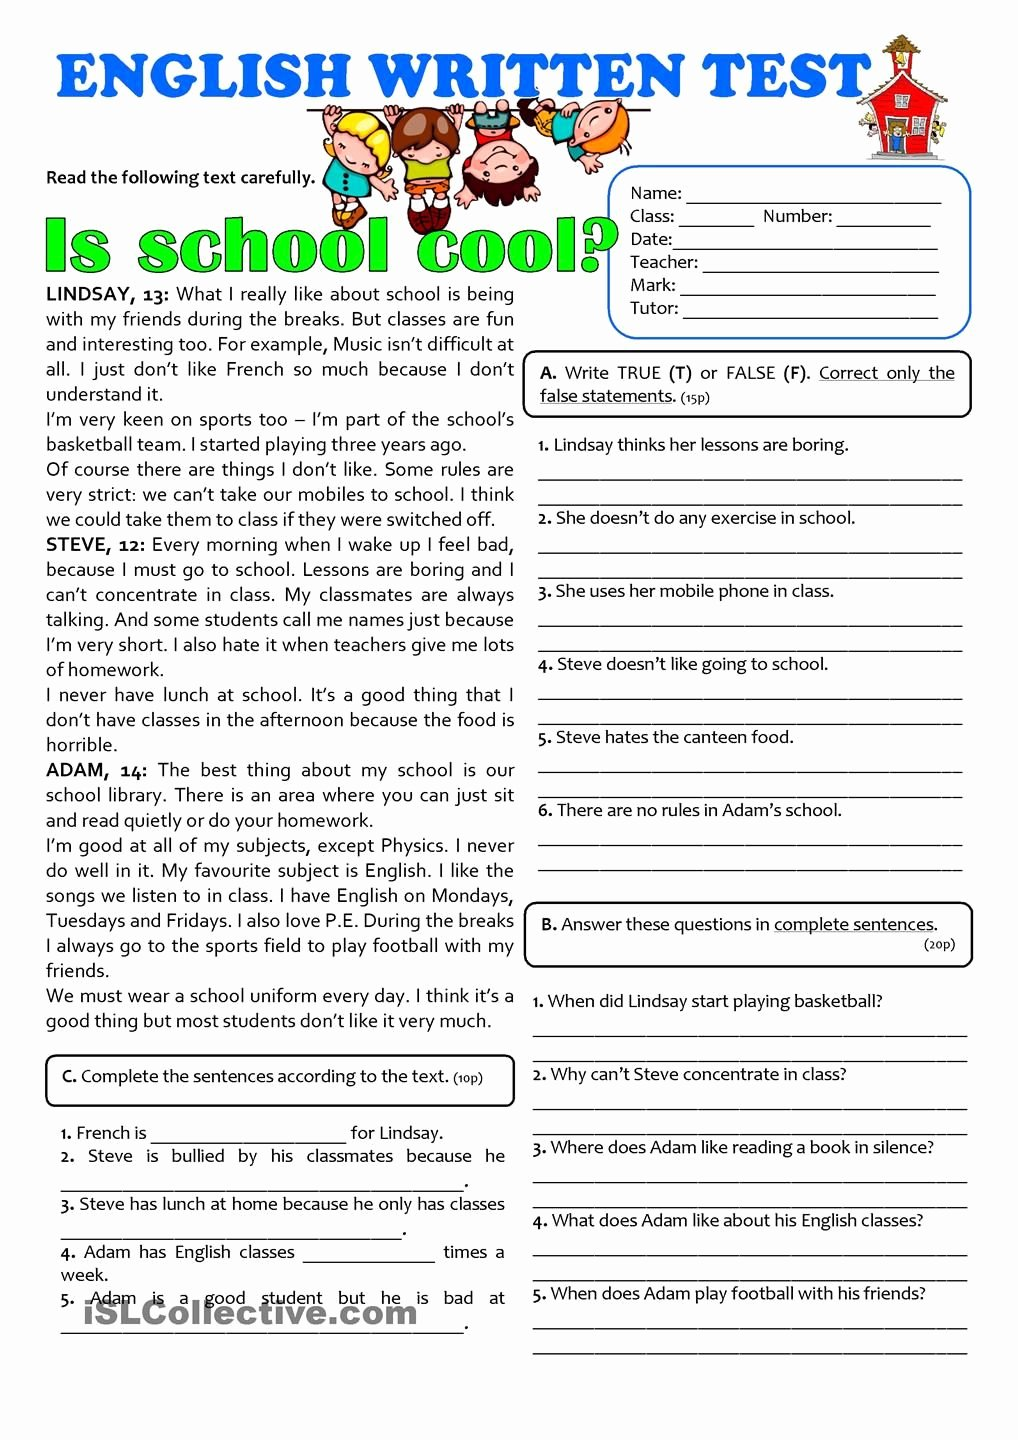 Reading Comprehension 7th Grade Worksheet Fresh is School Cool 7th Grade Test